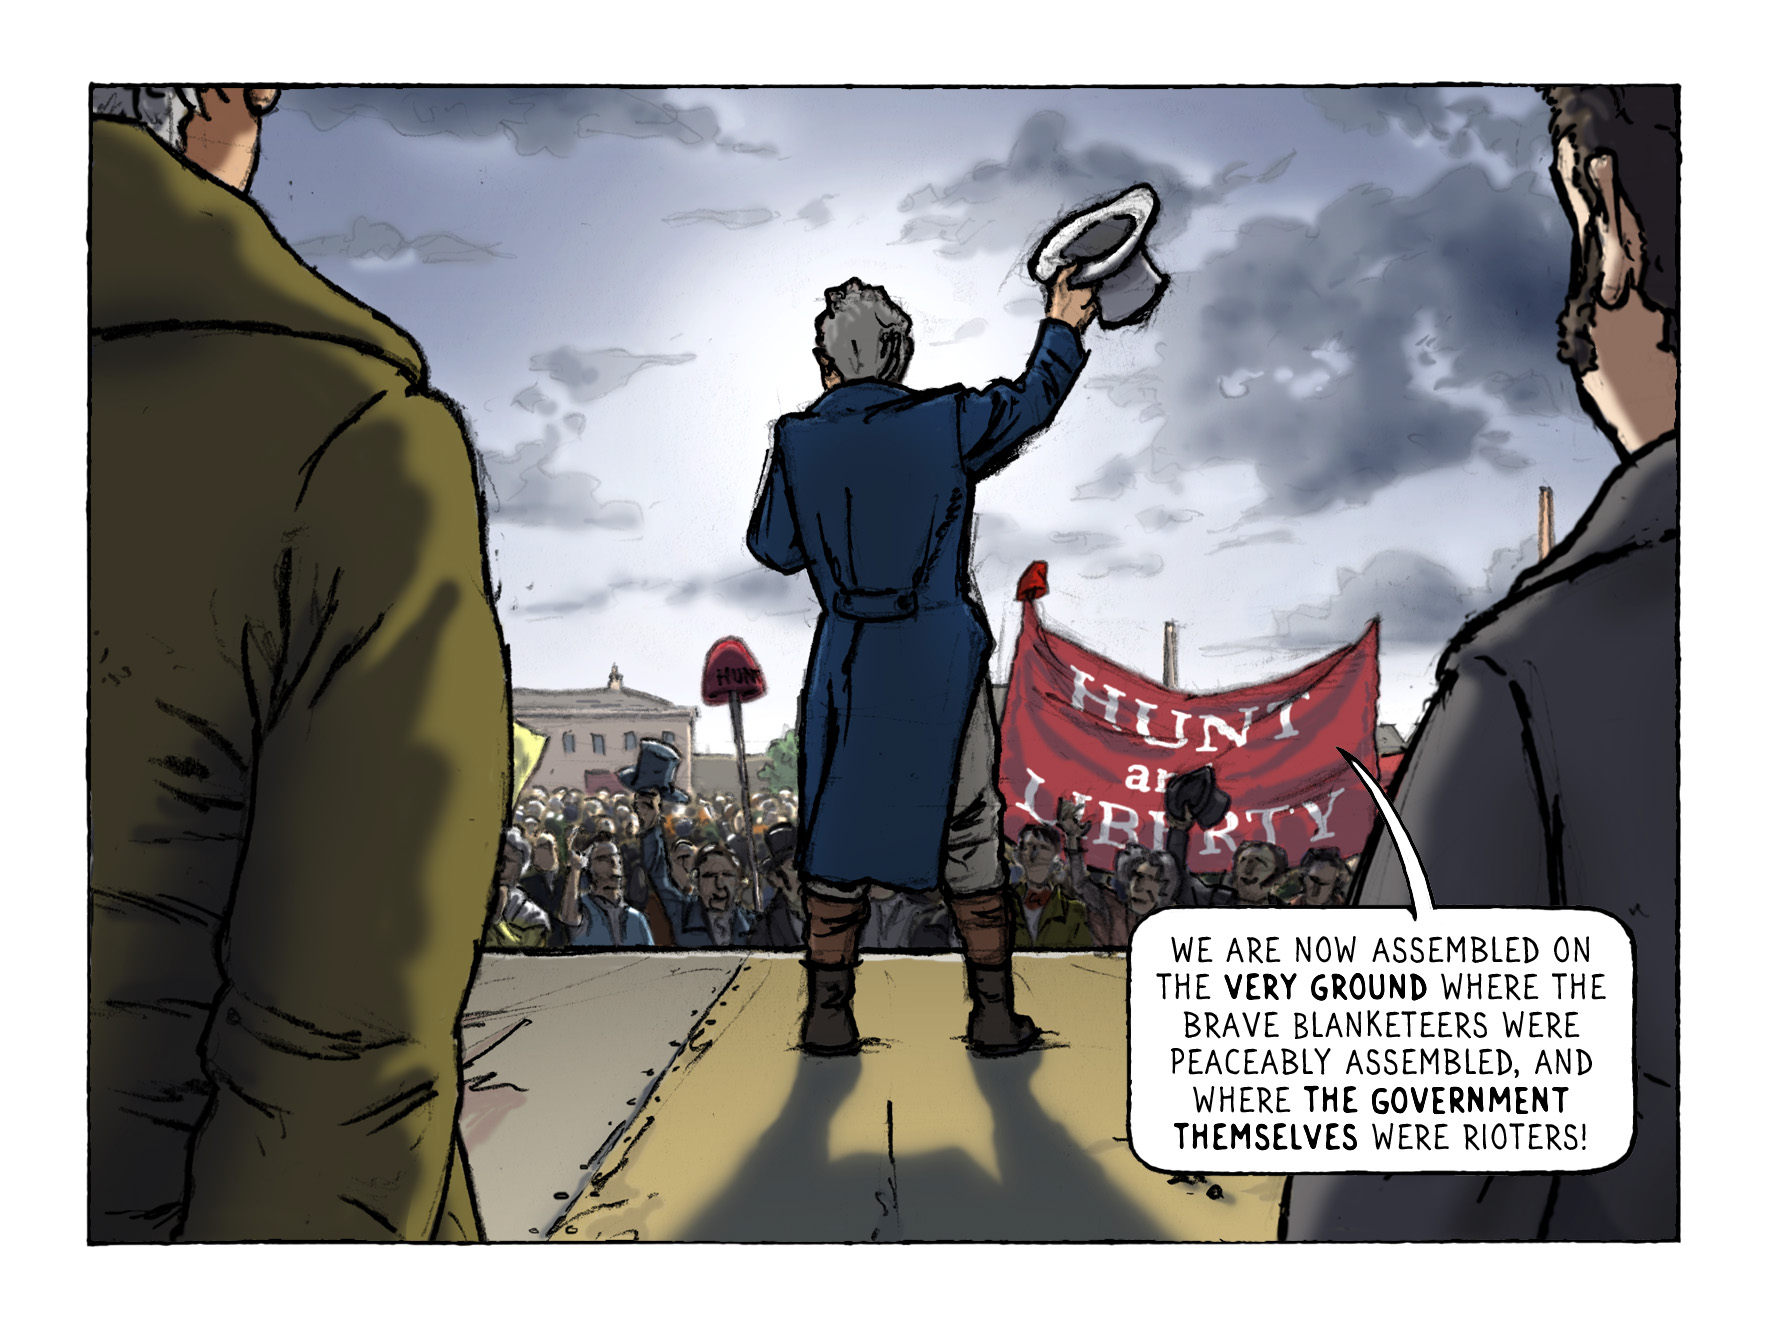 1819 Jan 18 Hunt Manchester. Photo: Peterloo Graphic Novel